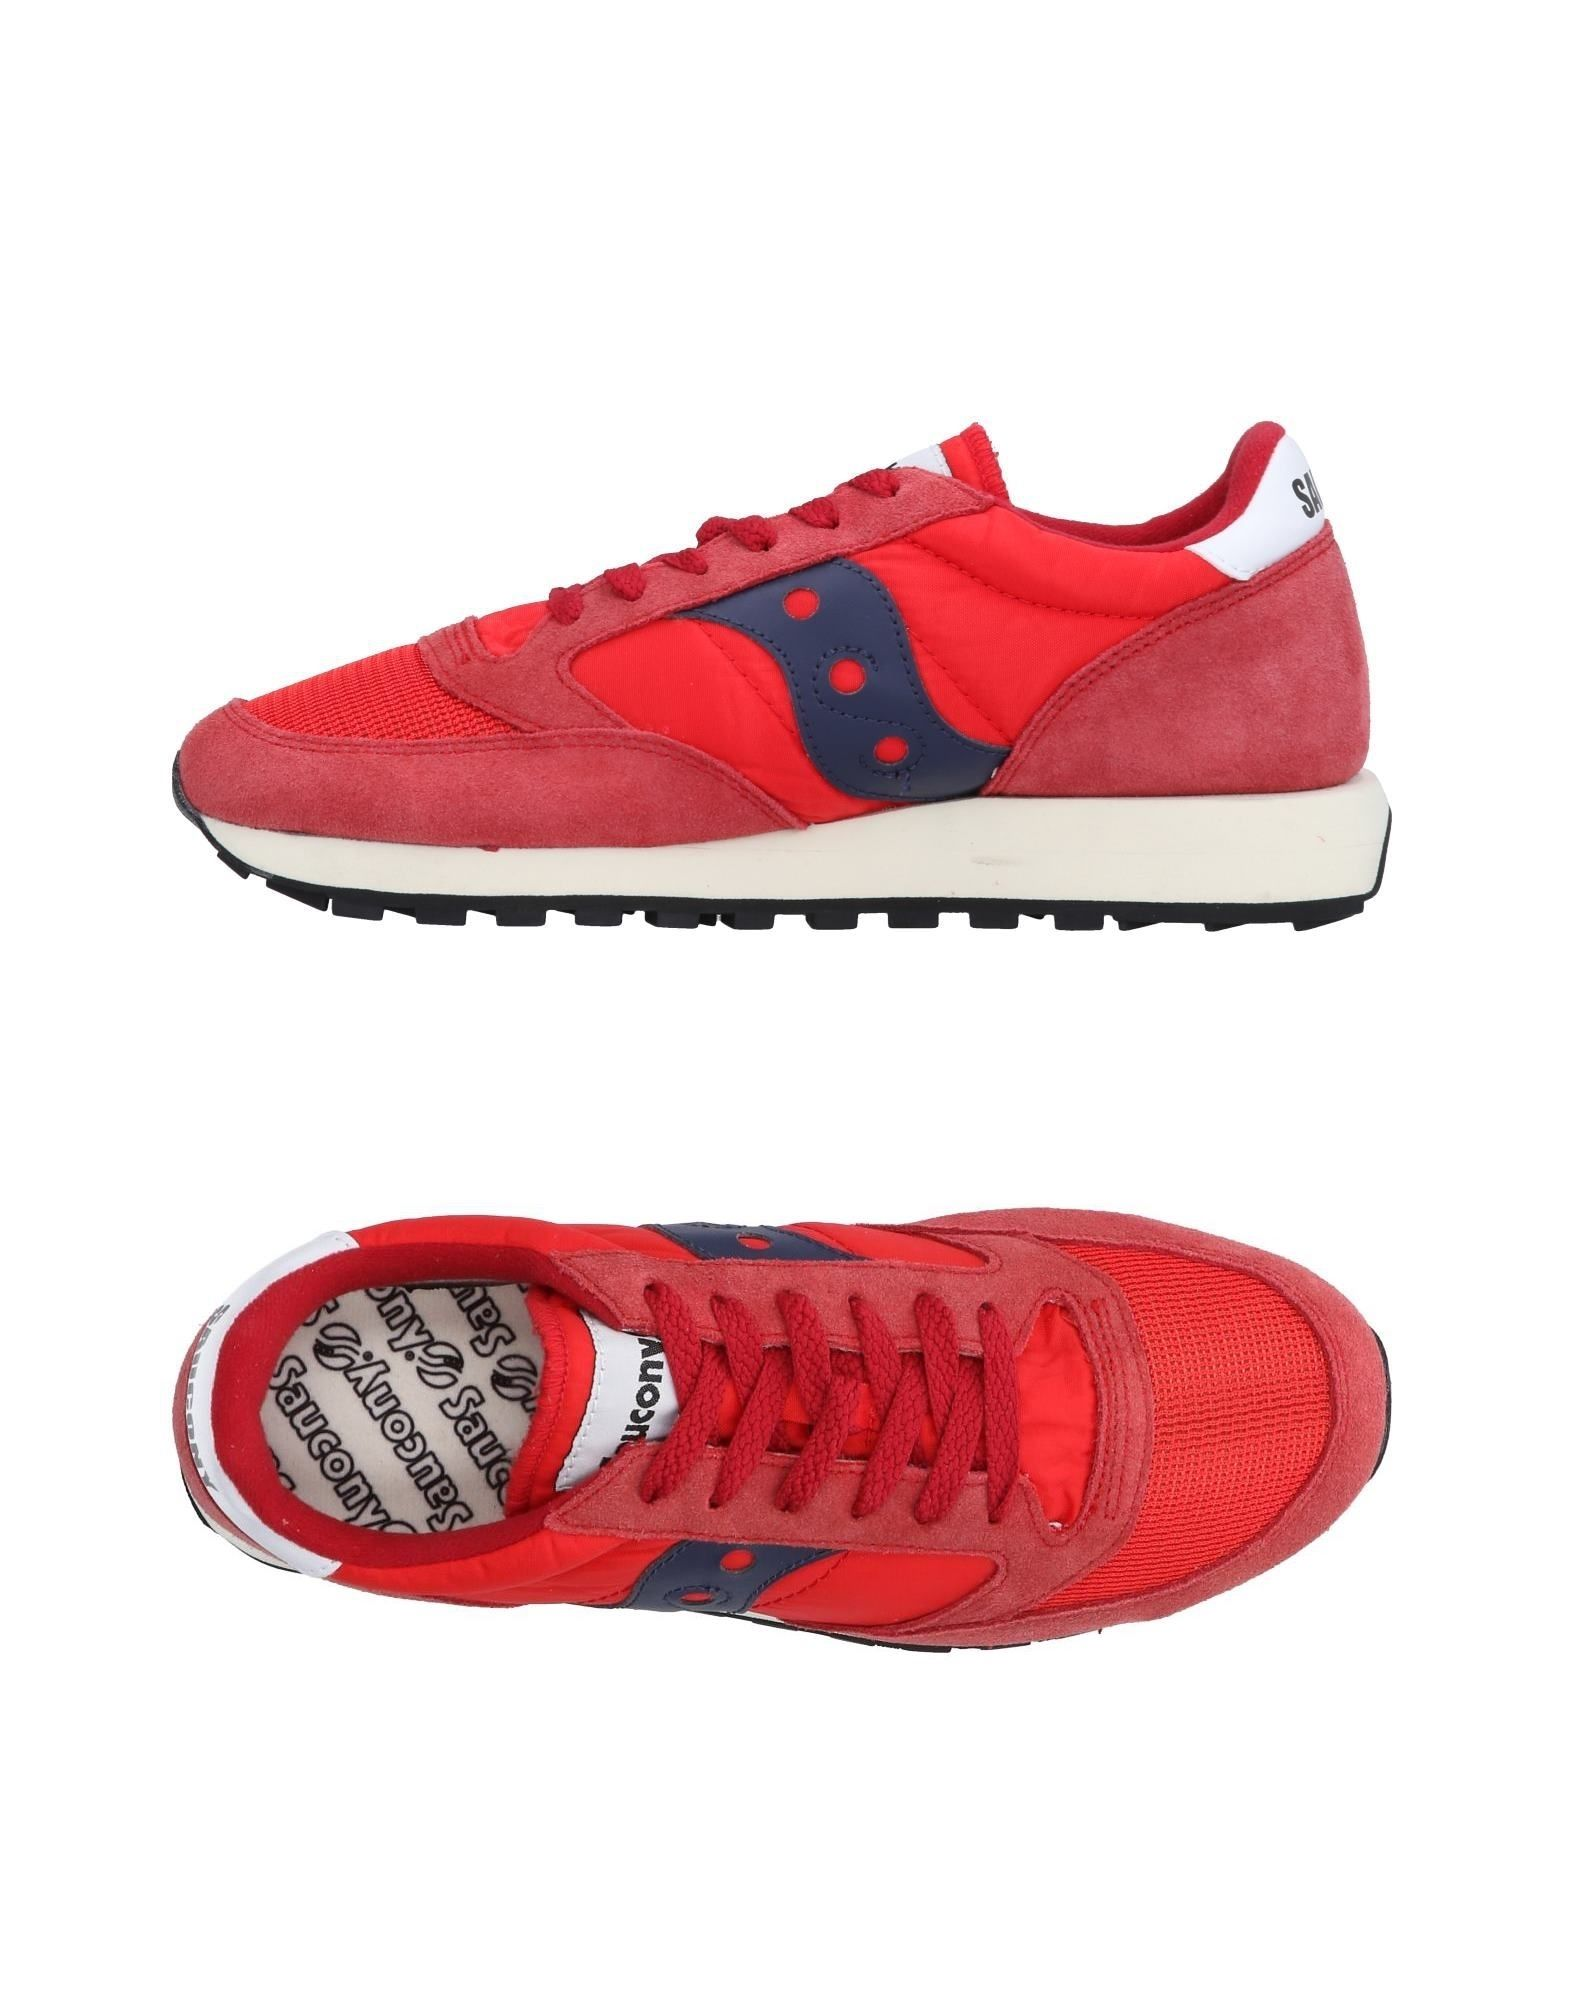 Sneakers Saucony Homme - Sneakers Saucony  Rouge Remise de marque